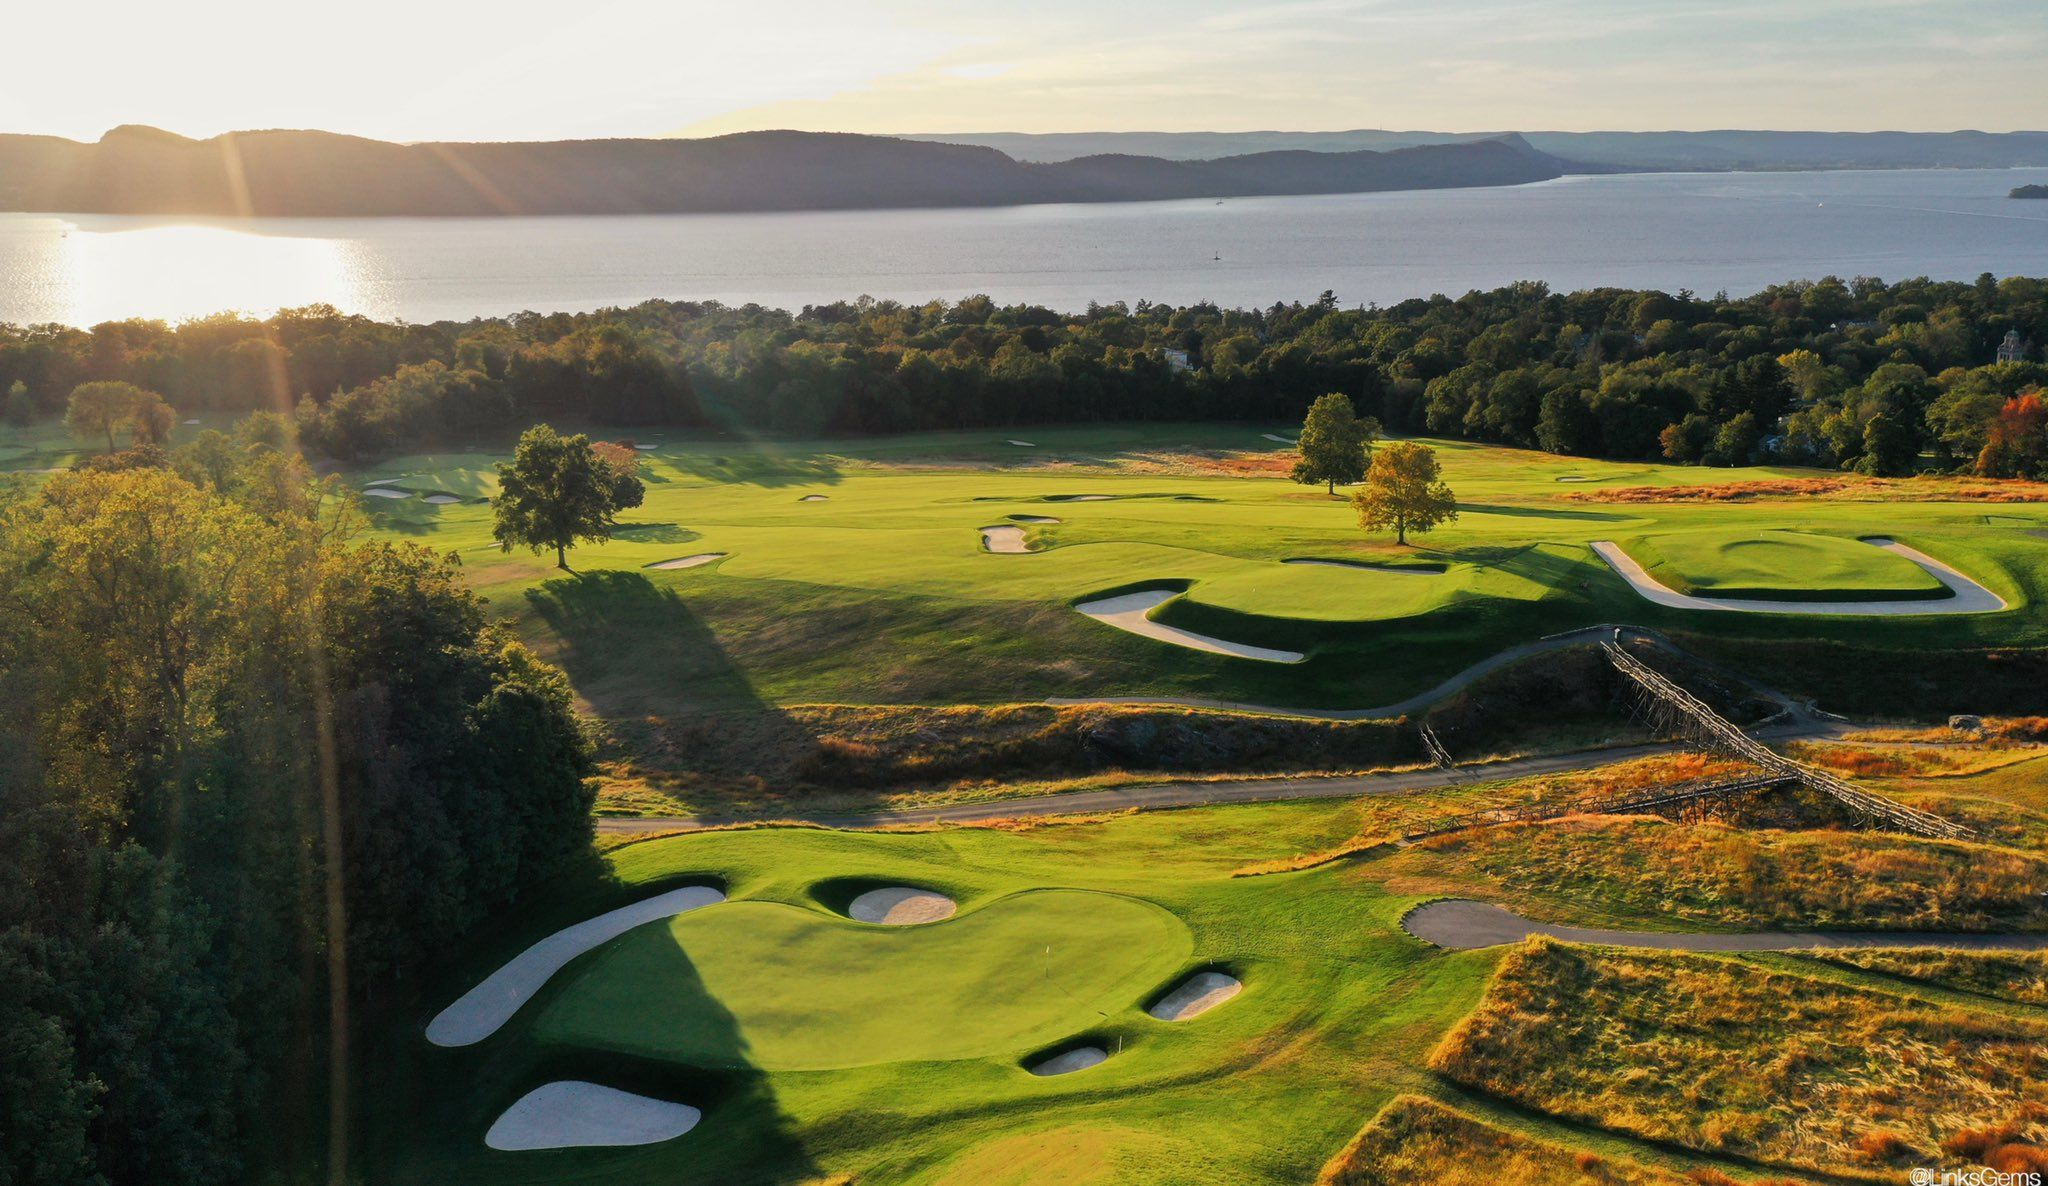 Pin by Bert Clark on Golf course dreamin | Golf courses